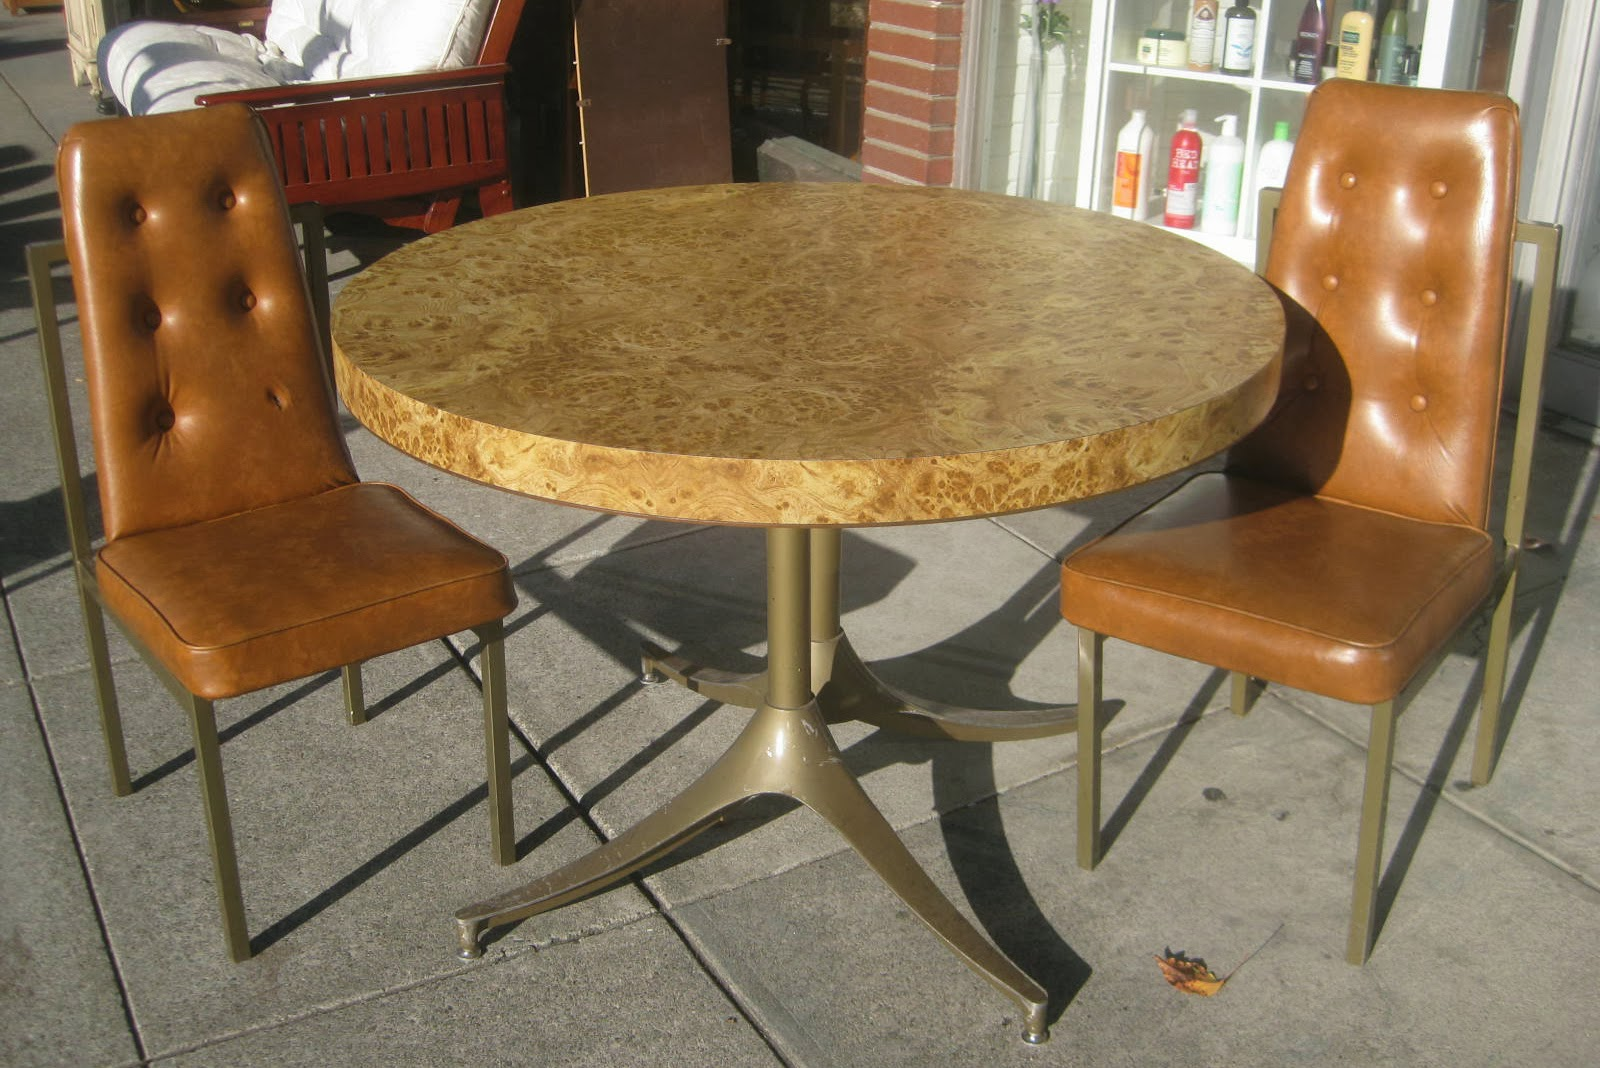 Retro Kitchen Chairs Vintage Metal For Sale 1950s Table And Home Decorating